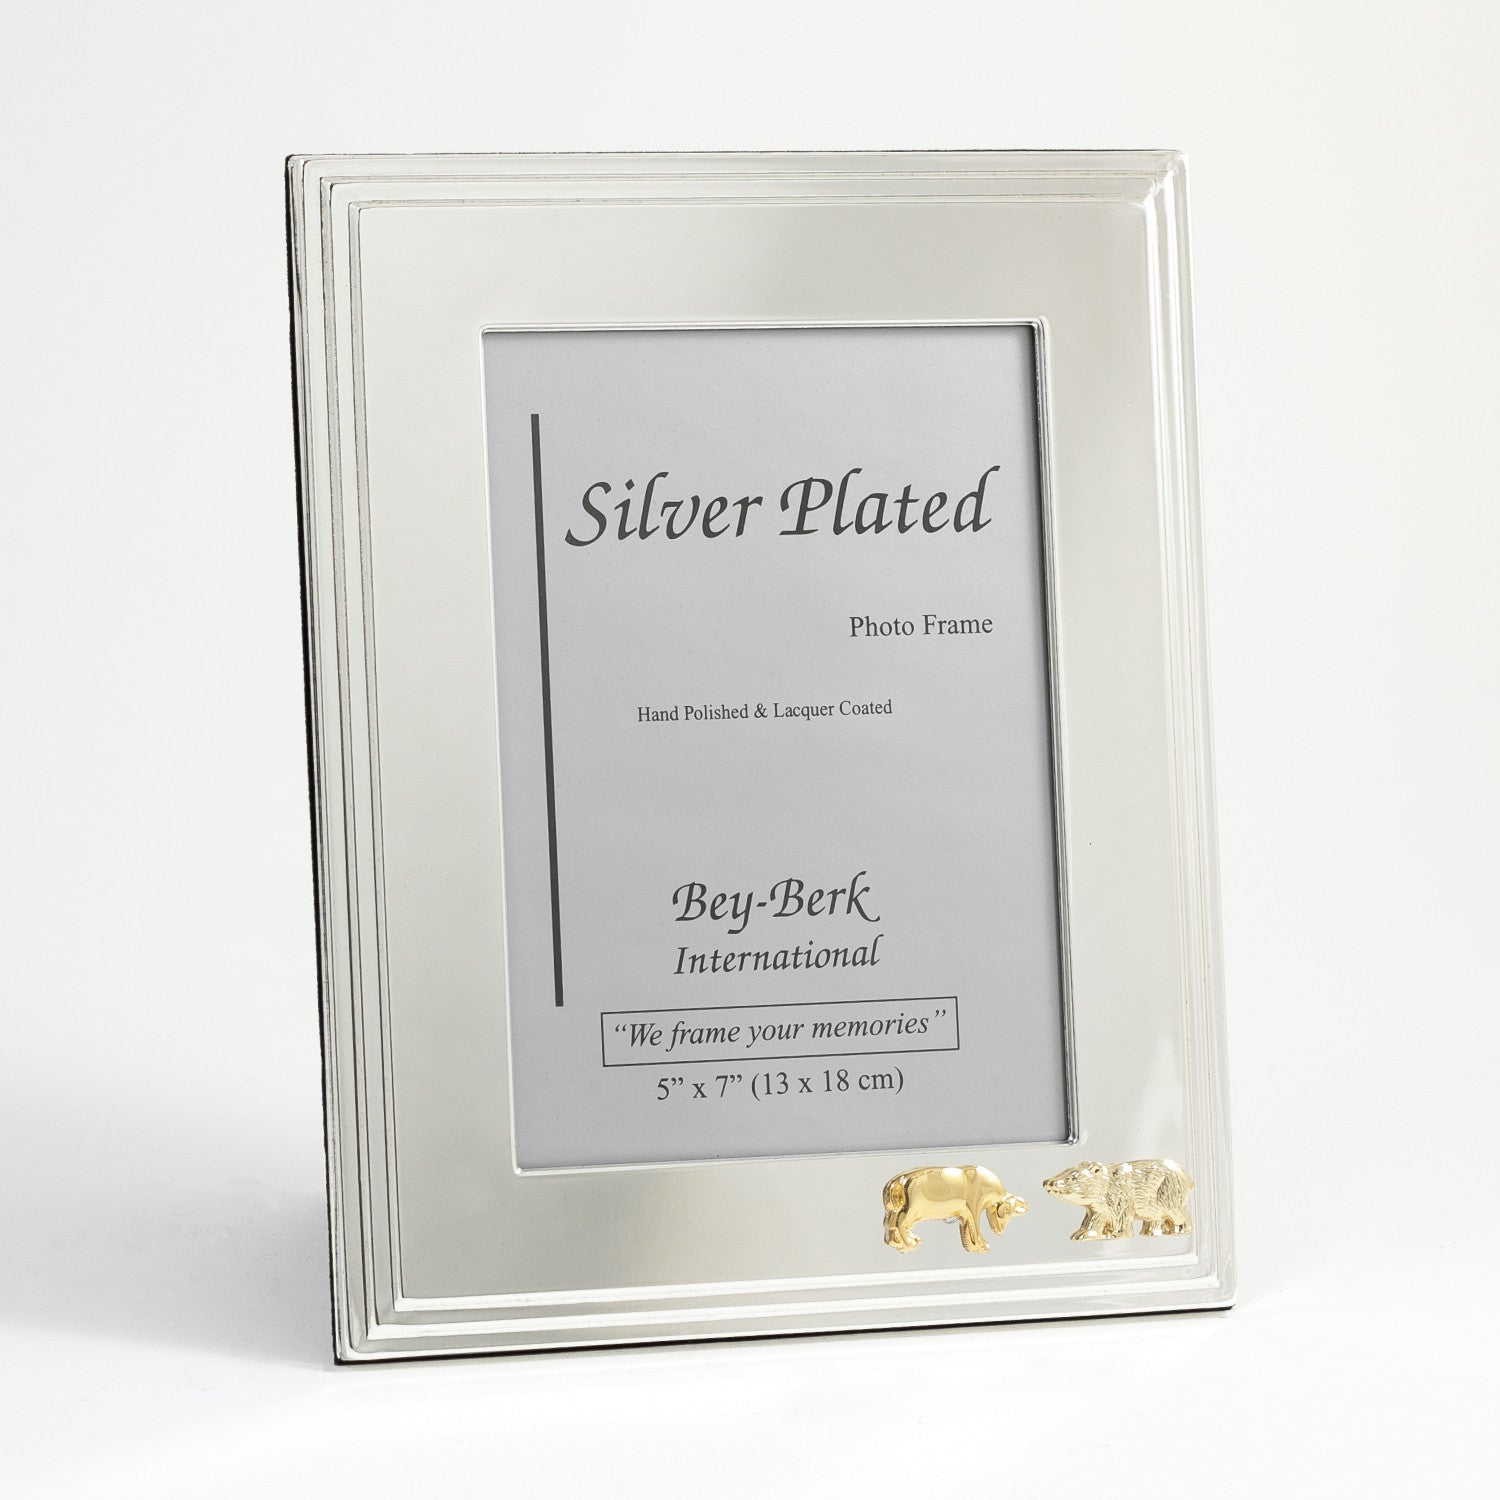 Wall Street Bull and Bear Photo Frame - Silver Plated - Wall Street Treasures